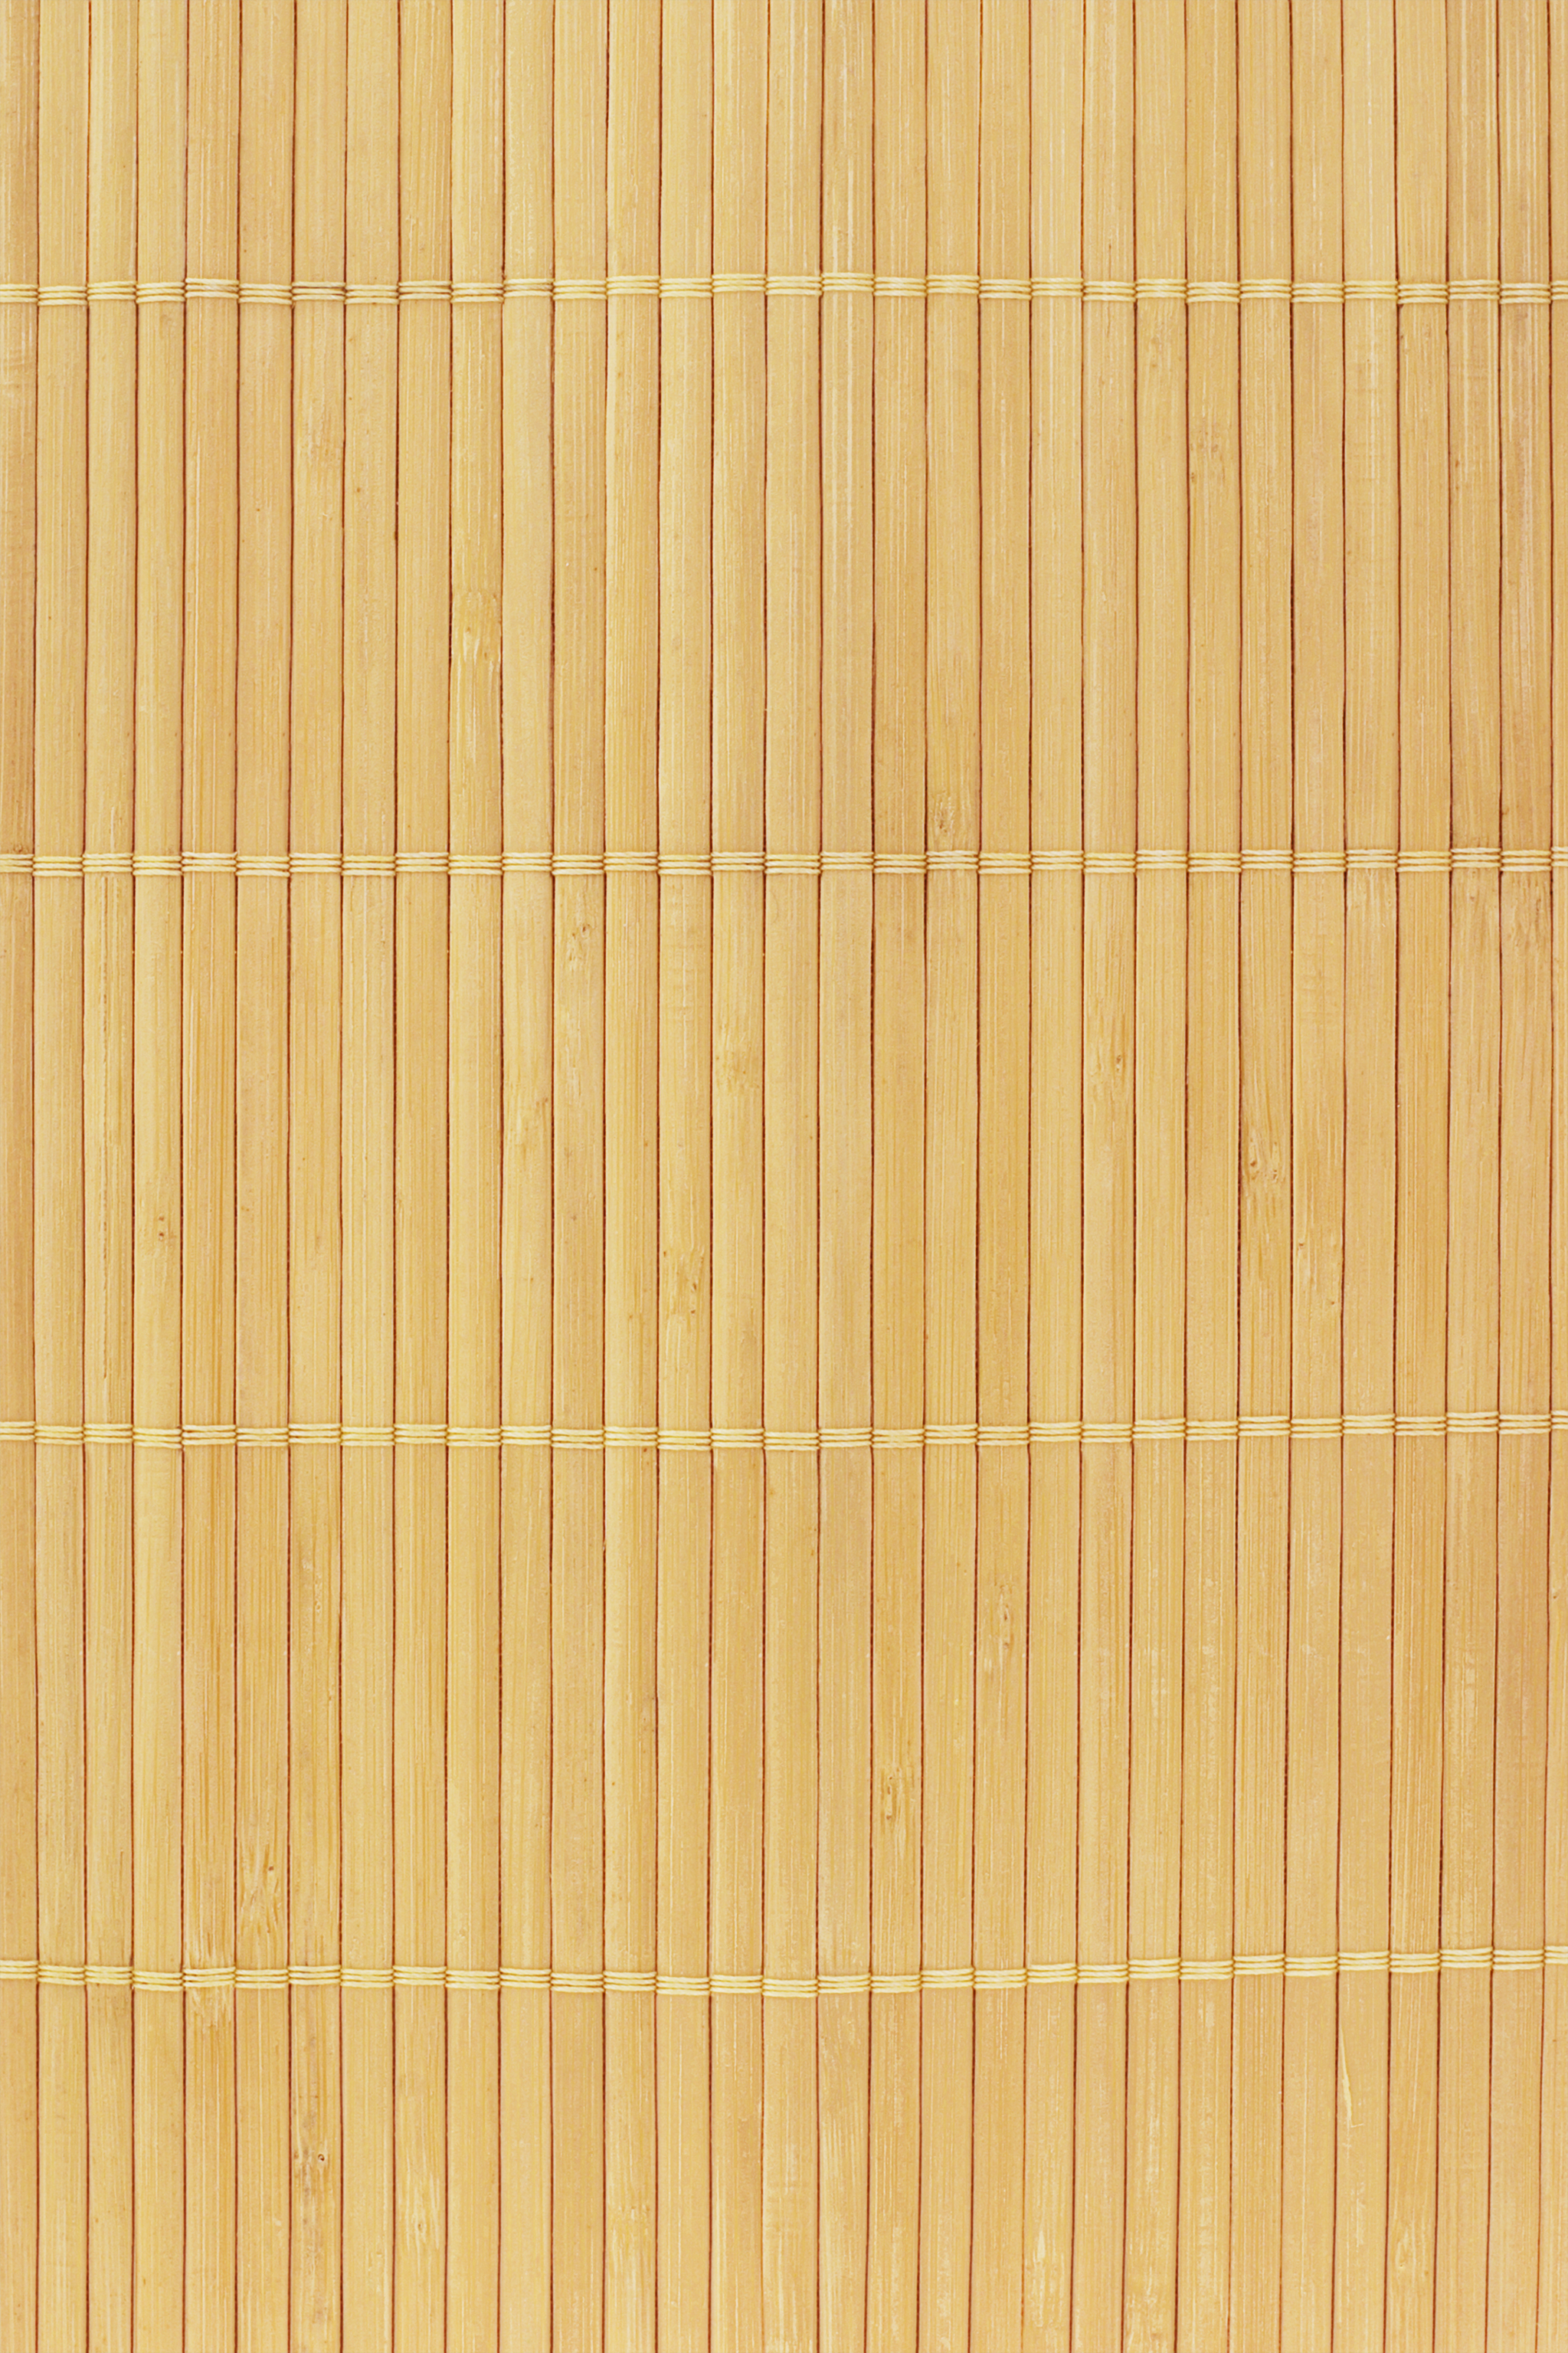 bamboo matting, mat, Texture, download photo, background, bamboo texture